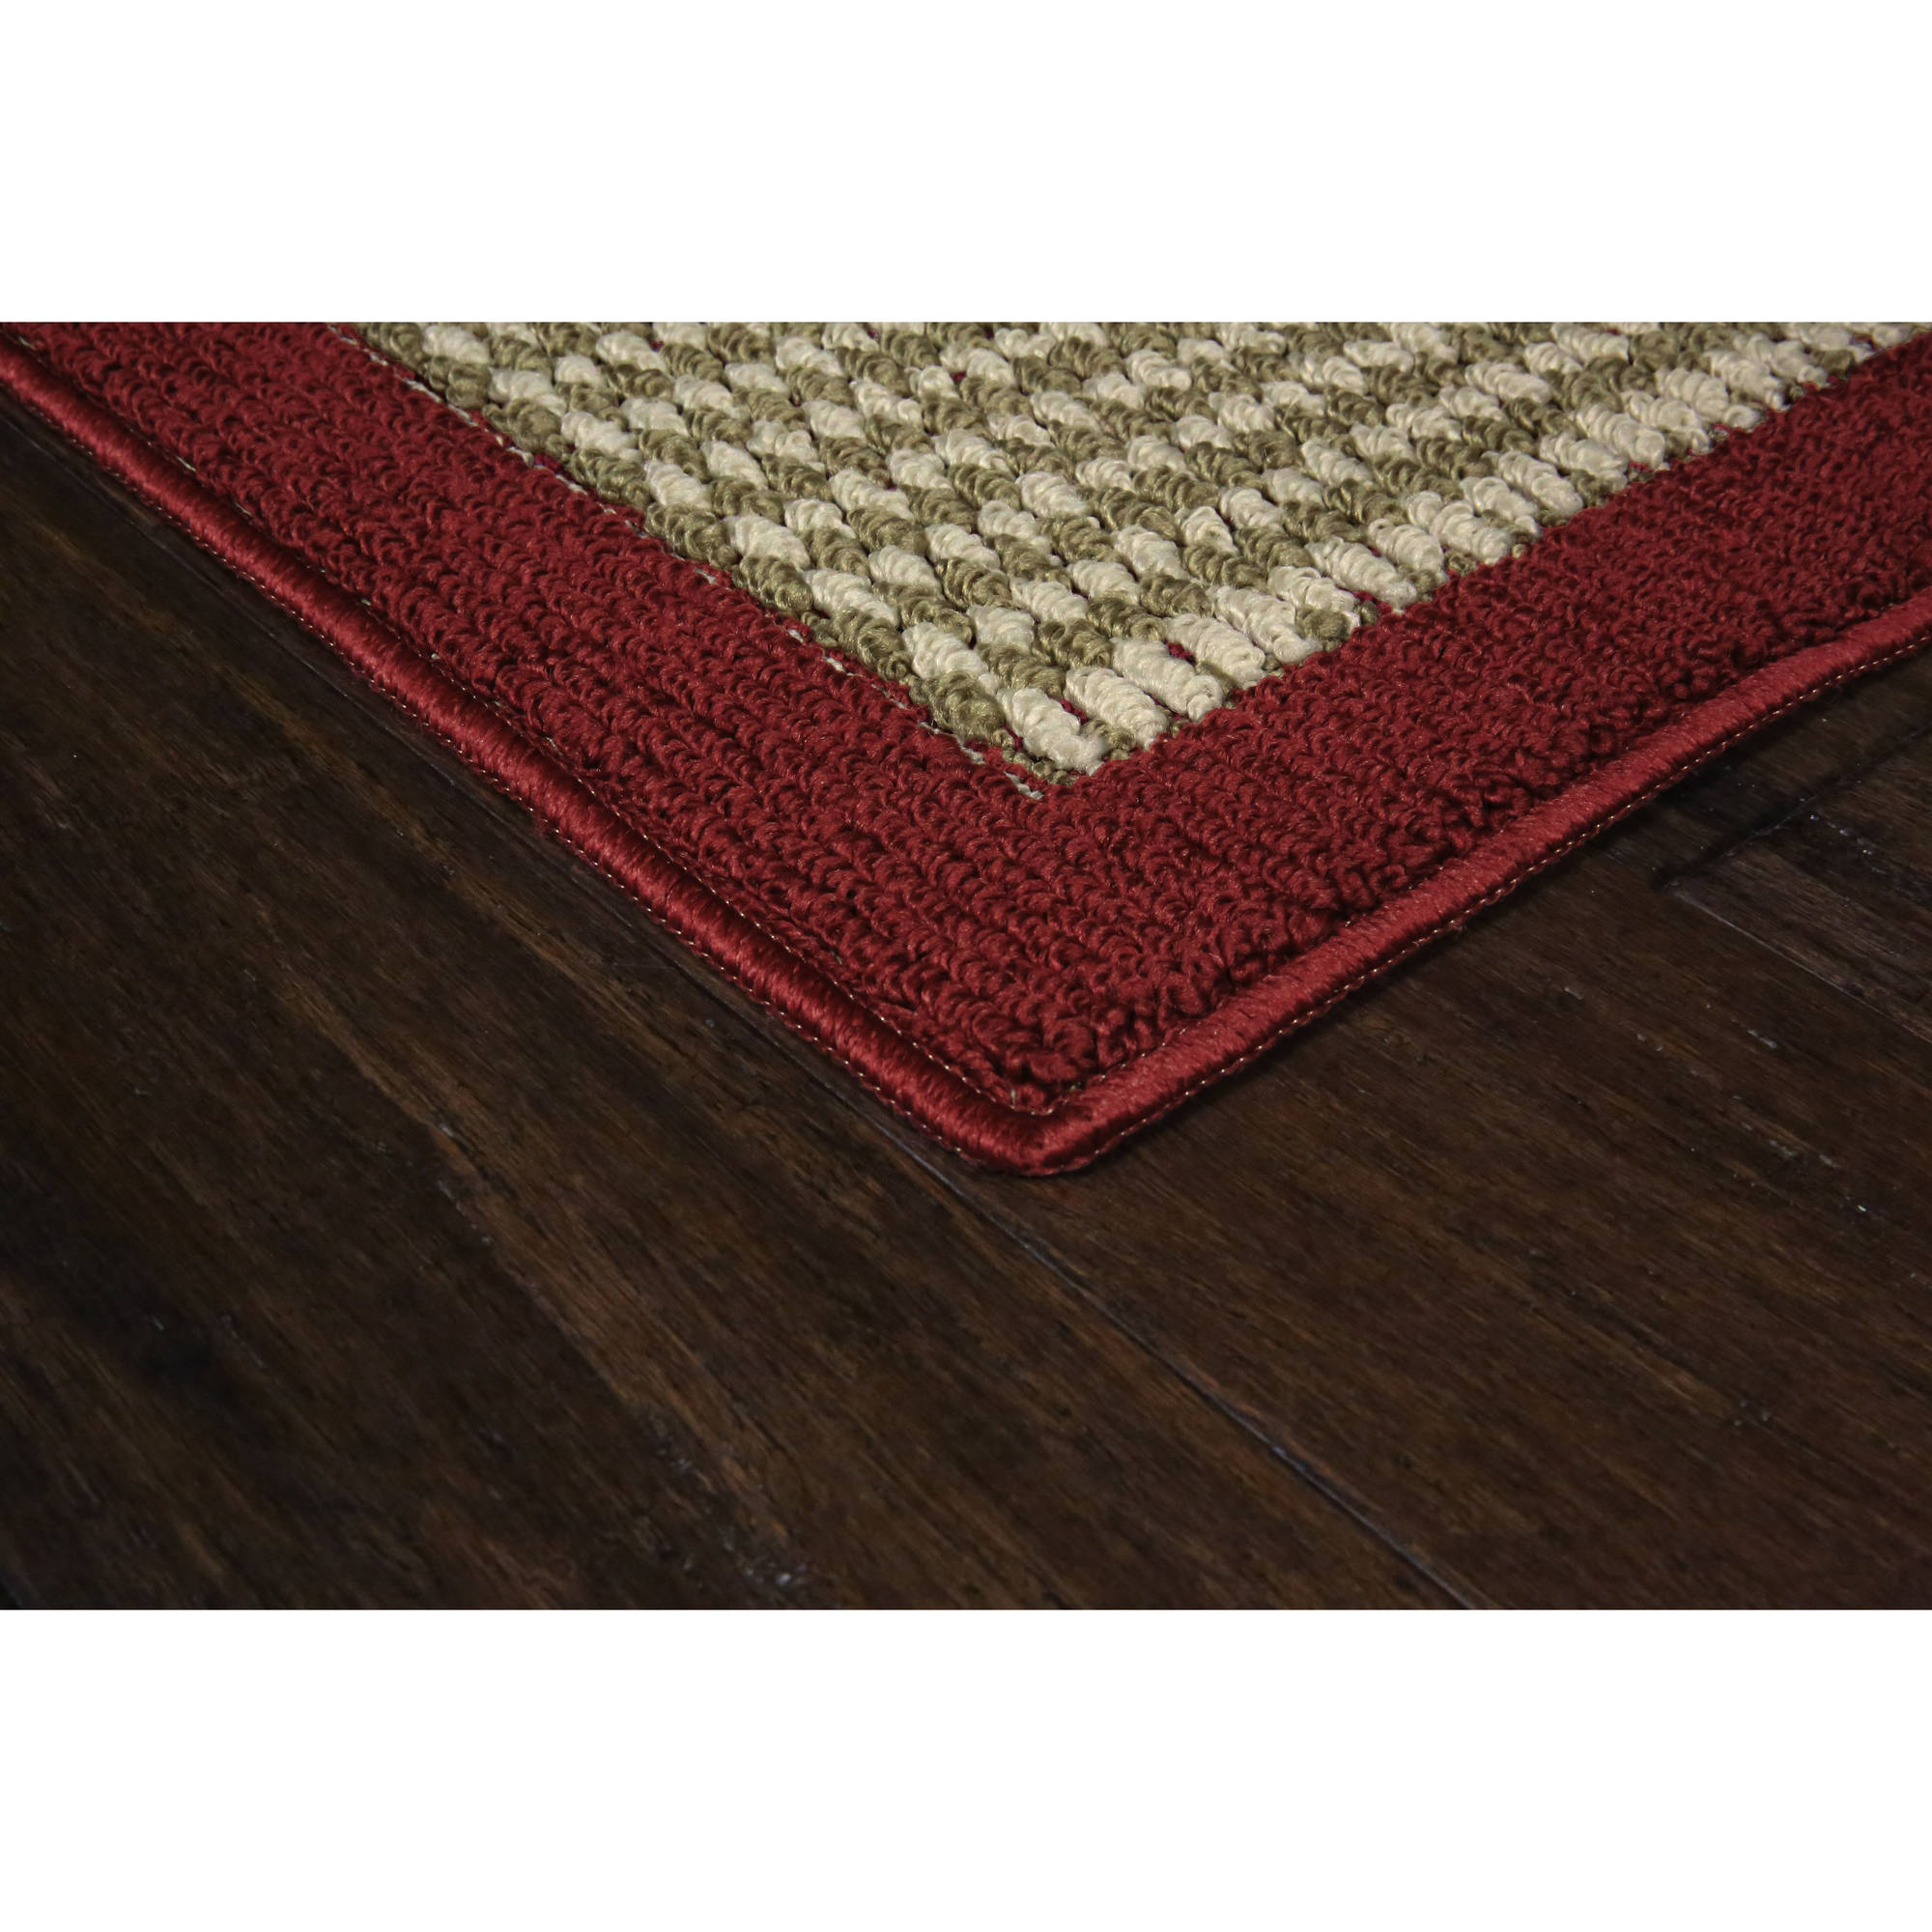 Red and brown rugs rugs ideas for Faux sisal rugs home depot